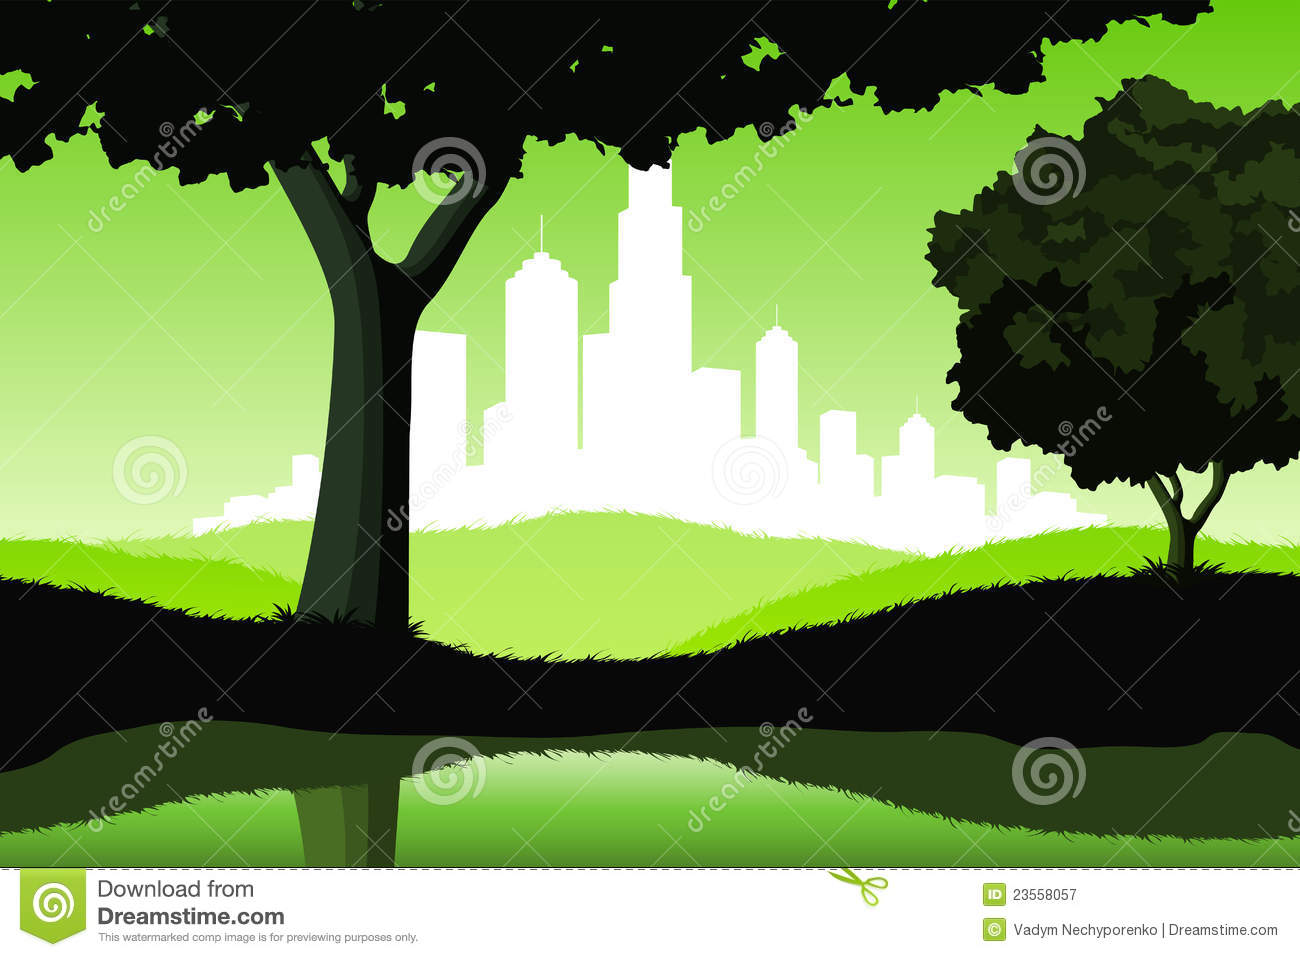 Night Landscape With Trees And City Silhouette Royalty